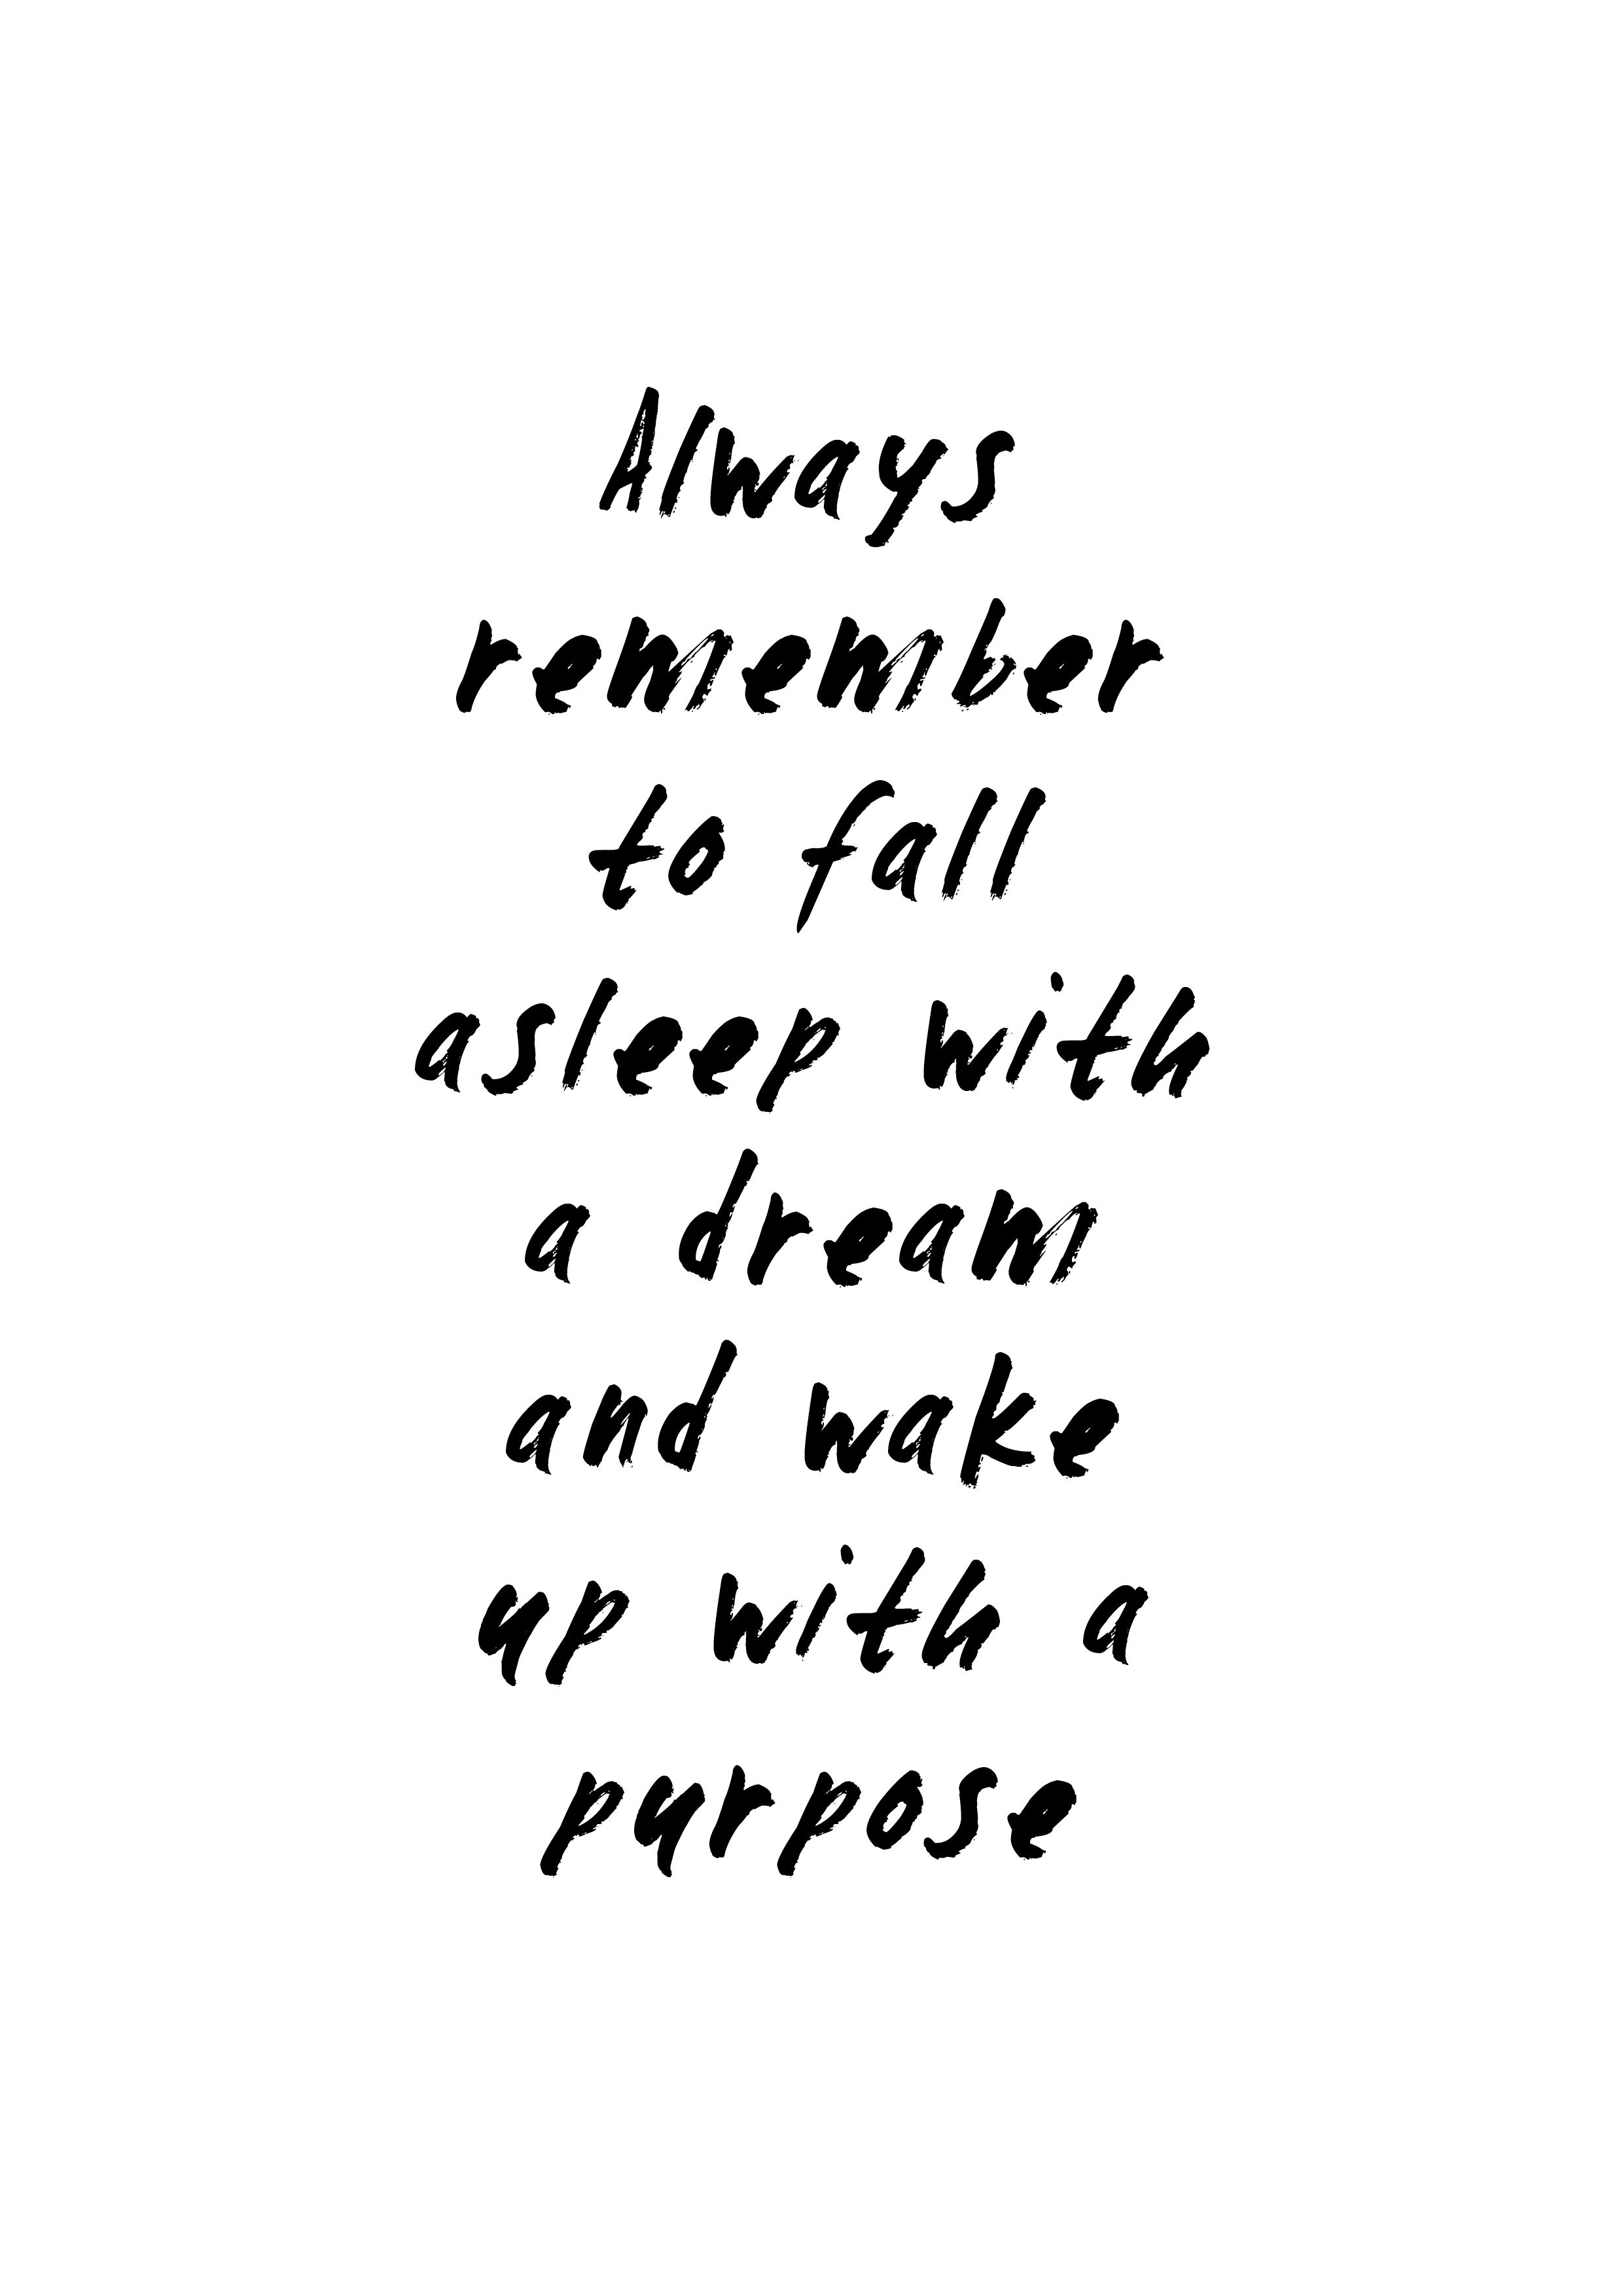 Purpose Quotes Prepossessing Remember #asleep #dream #wake #purpose  Quotes  Pinterest .